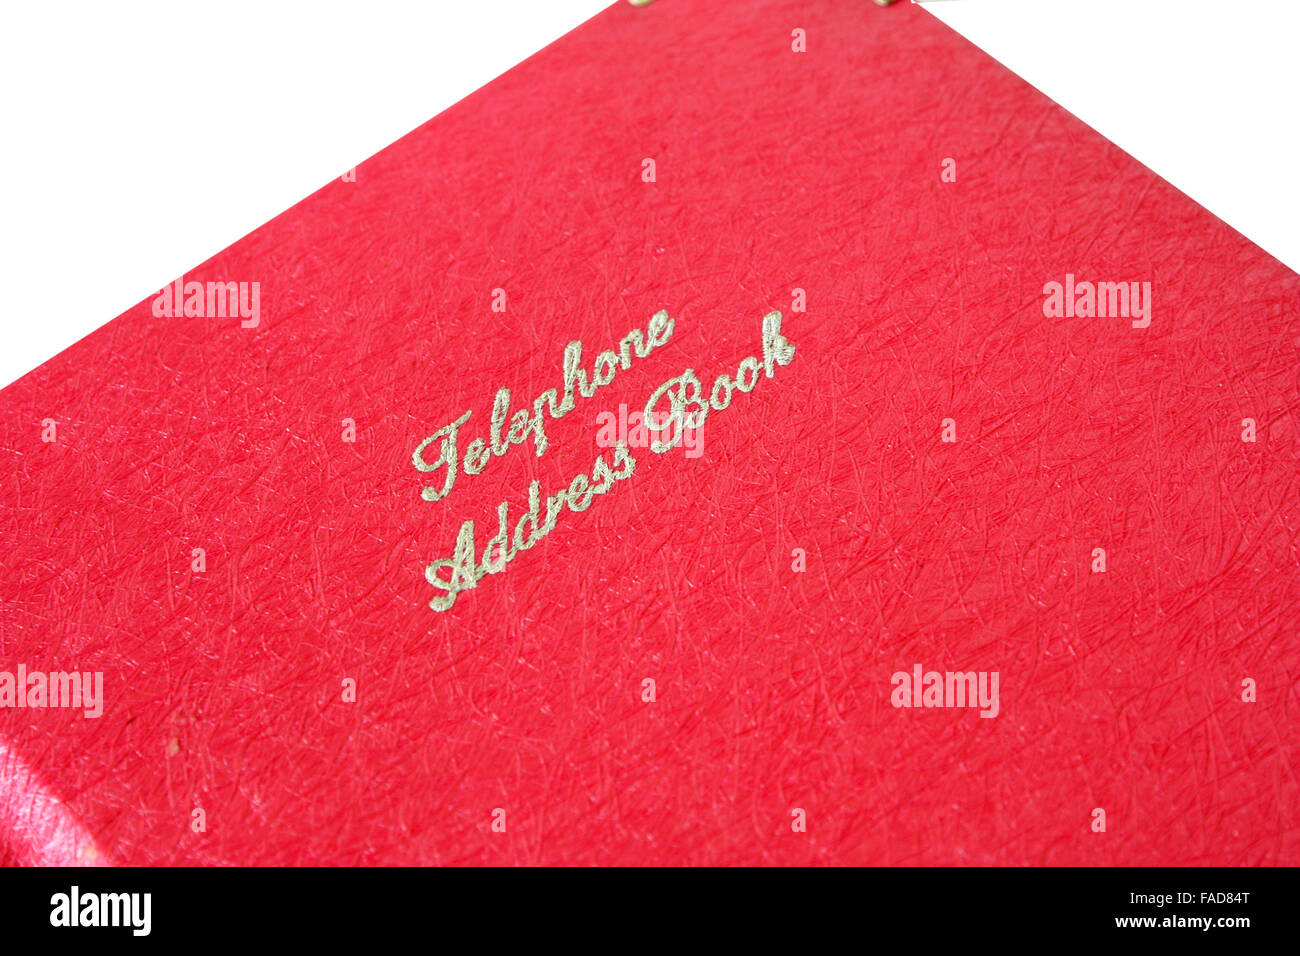 blank address book or personal reminder stock photos blank address